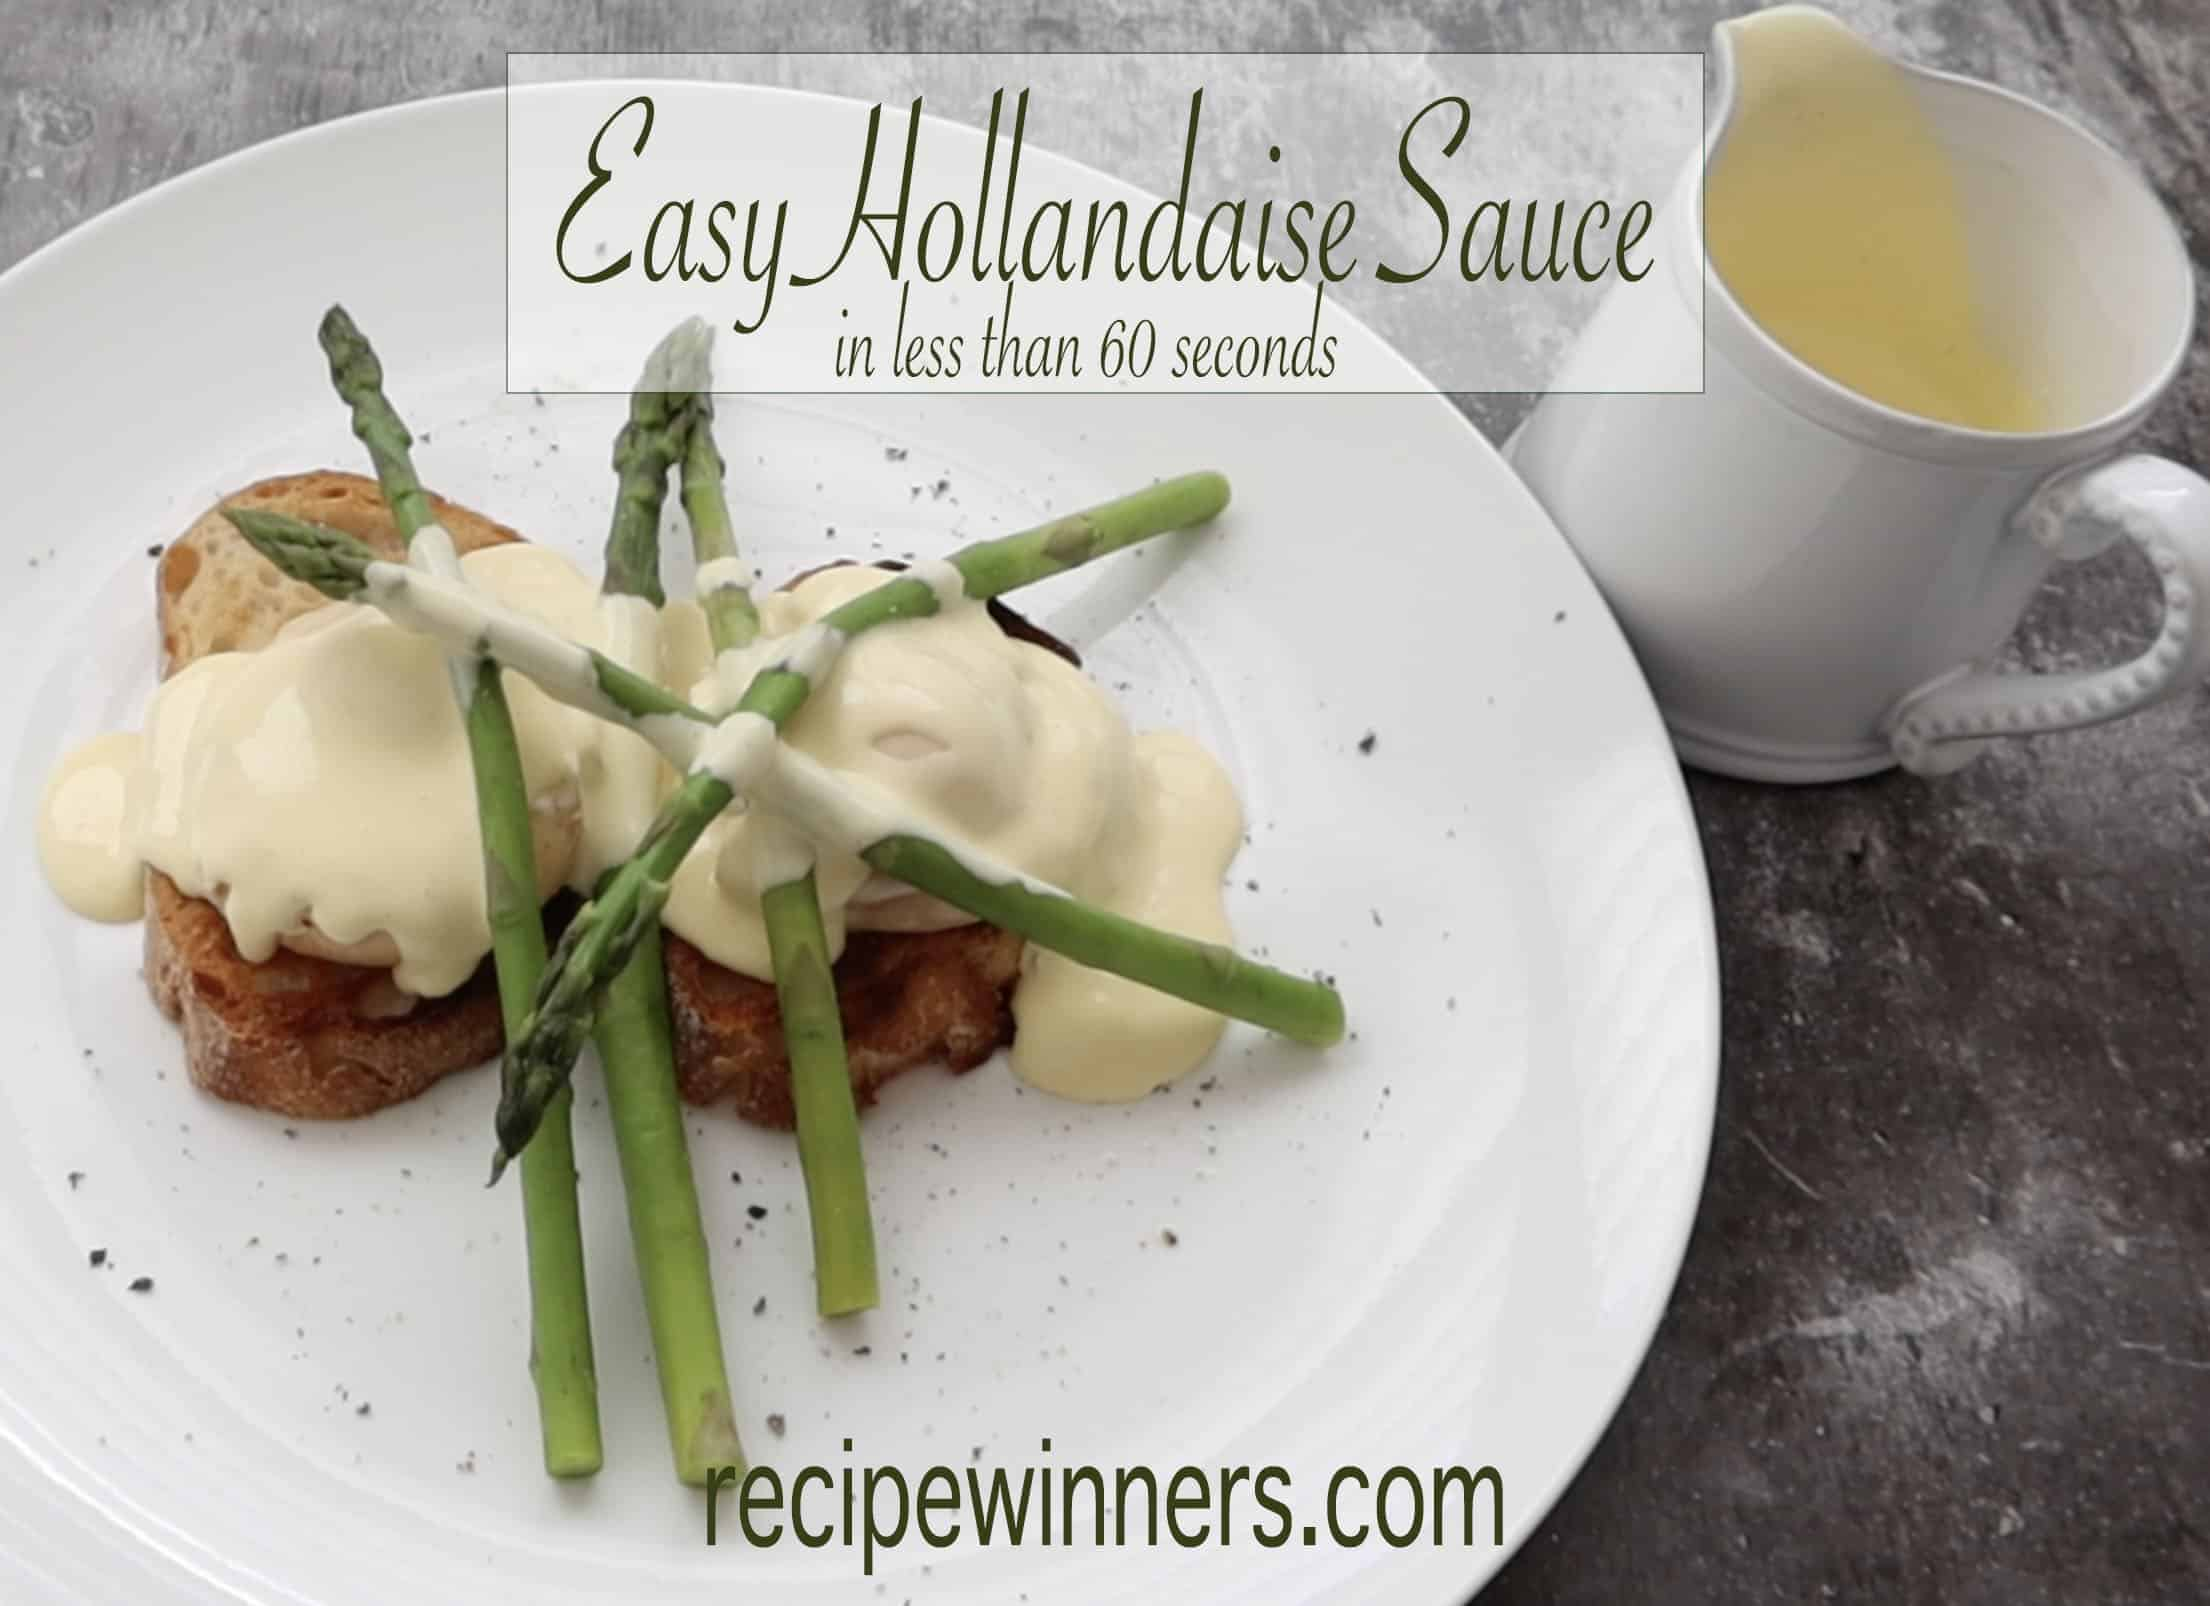 Easy Hollandaise Sauce - in less than 60 seconds!